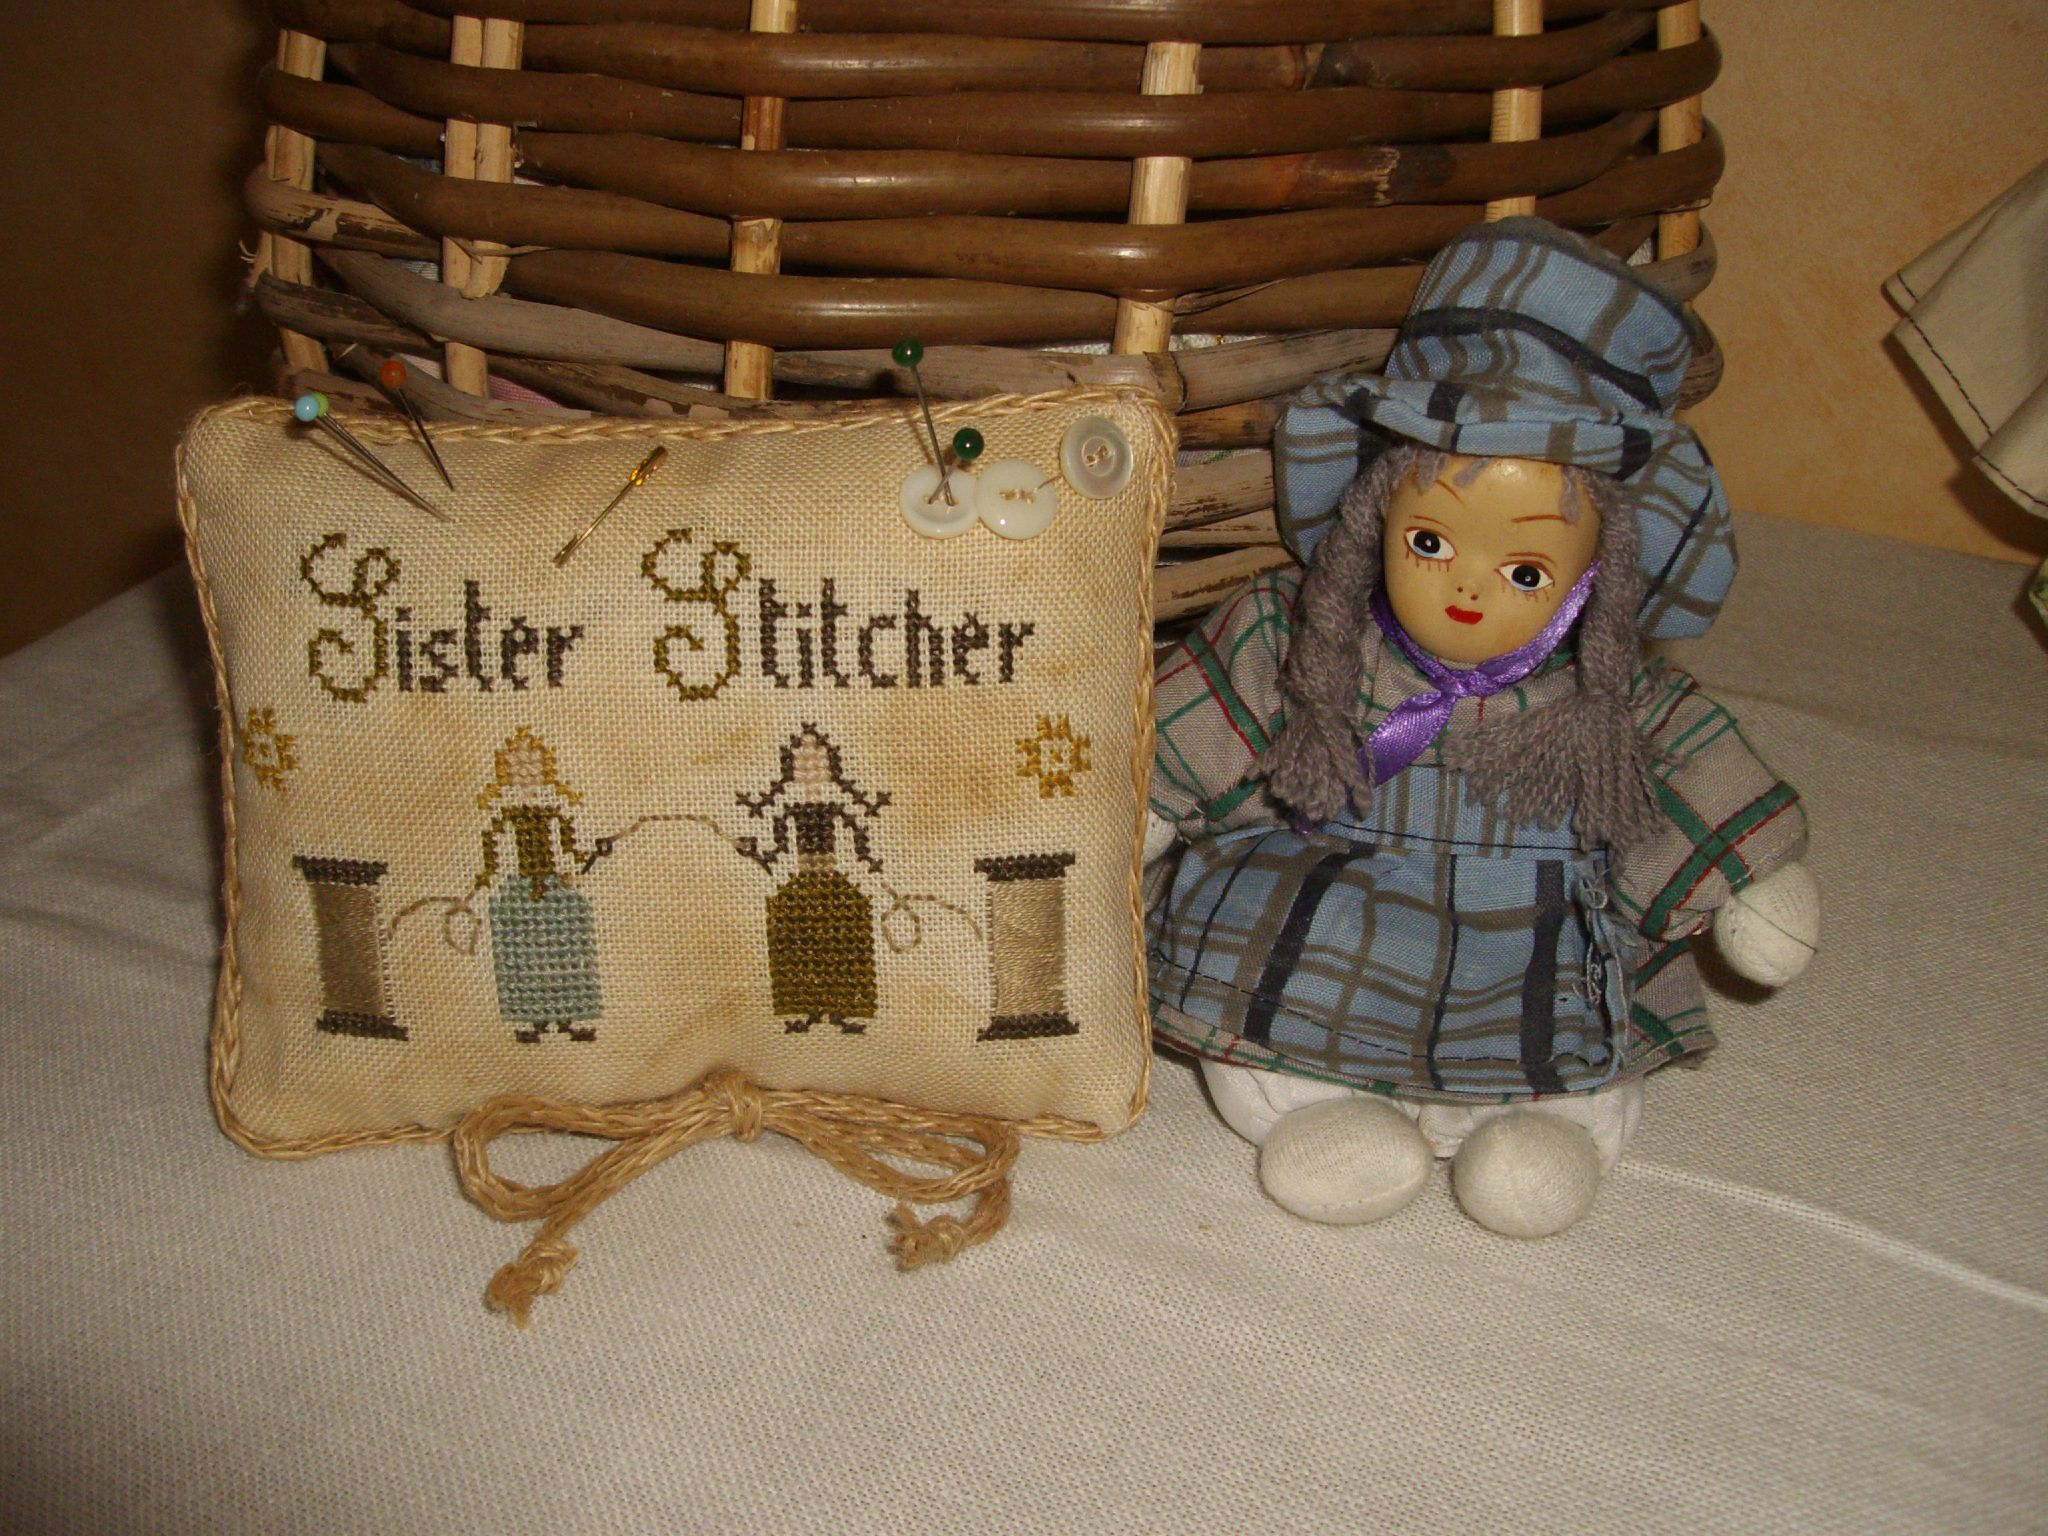 coussinet sister stitcher 2